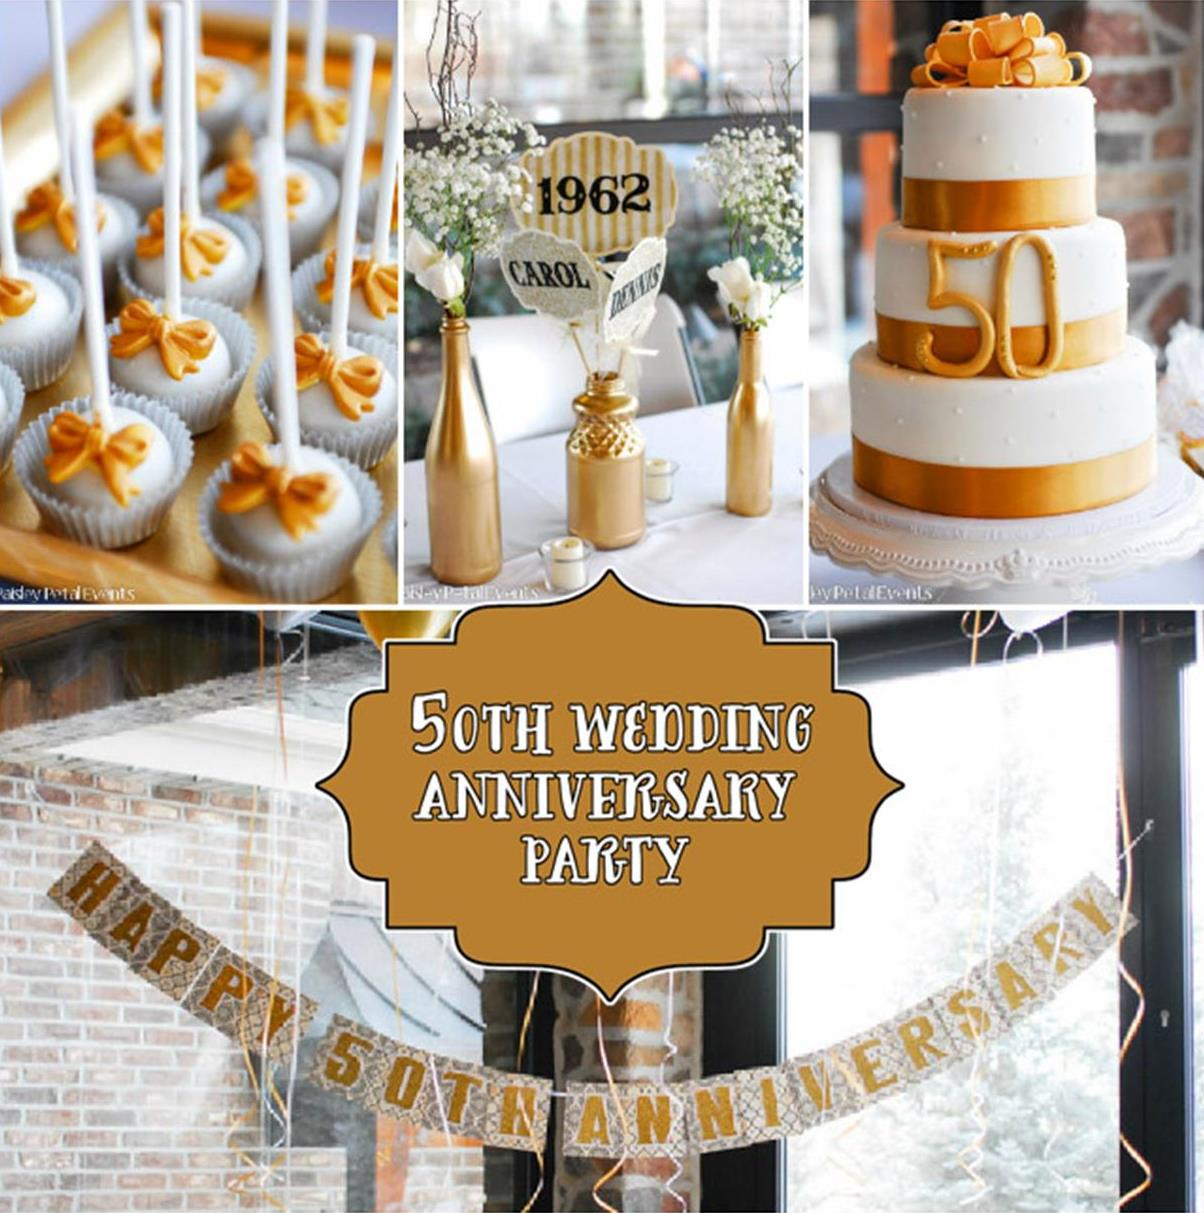 Fabulous Anniversary Party Ideas For Any Milestone